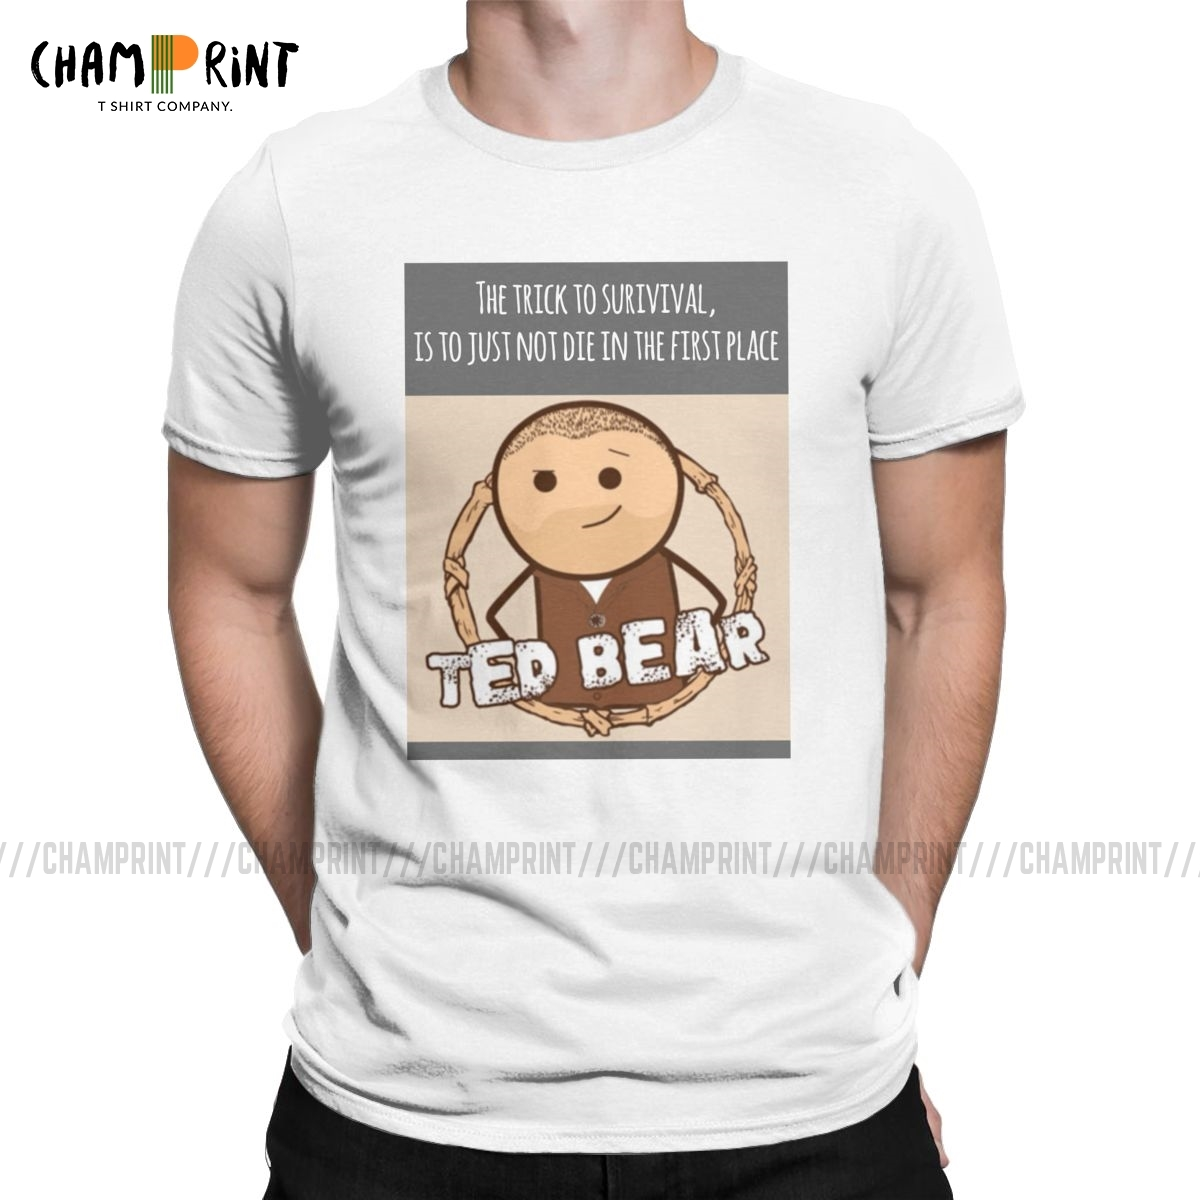 Men's T-Shirt Ted Bear Amazing Pure Cotton Tees Short Sleeve The Cyanide & Happiness Show T Shirts Crew Neck Clothing 4XL 5XL image